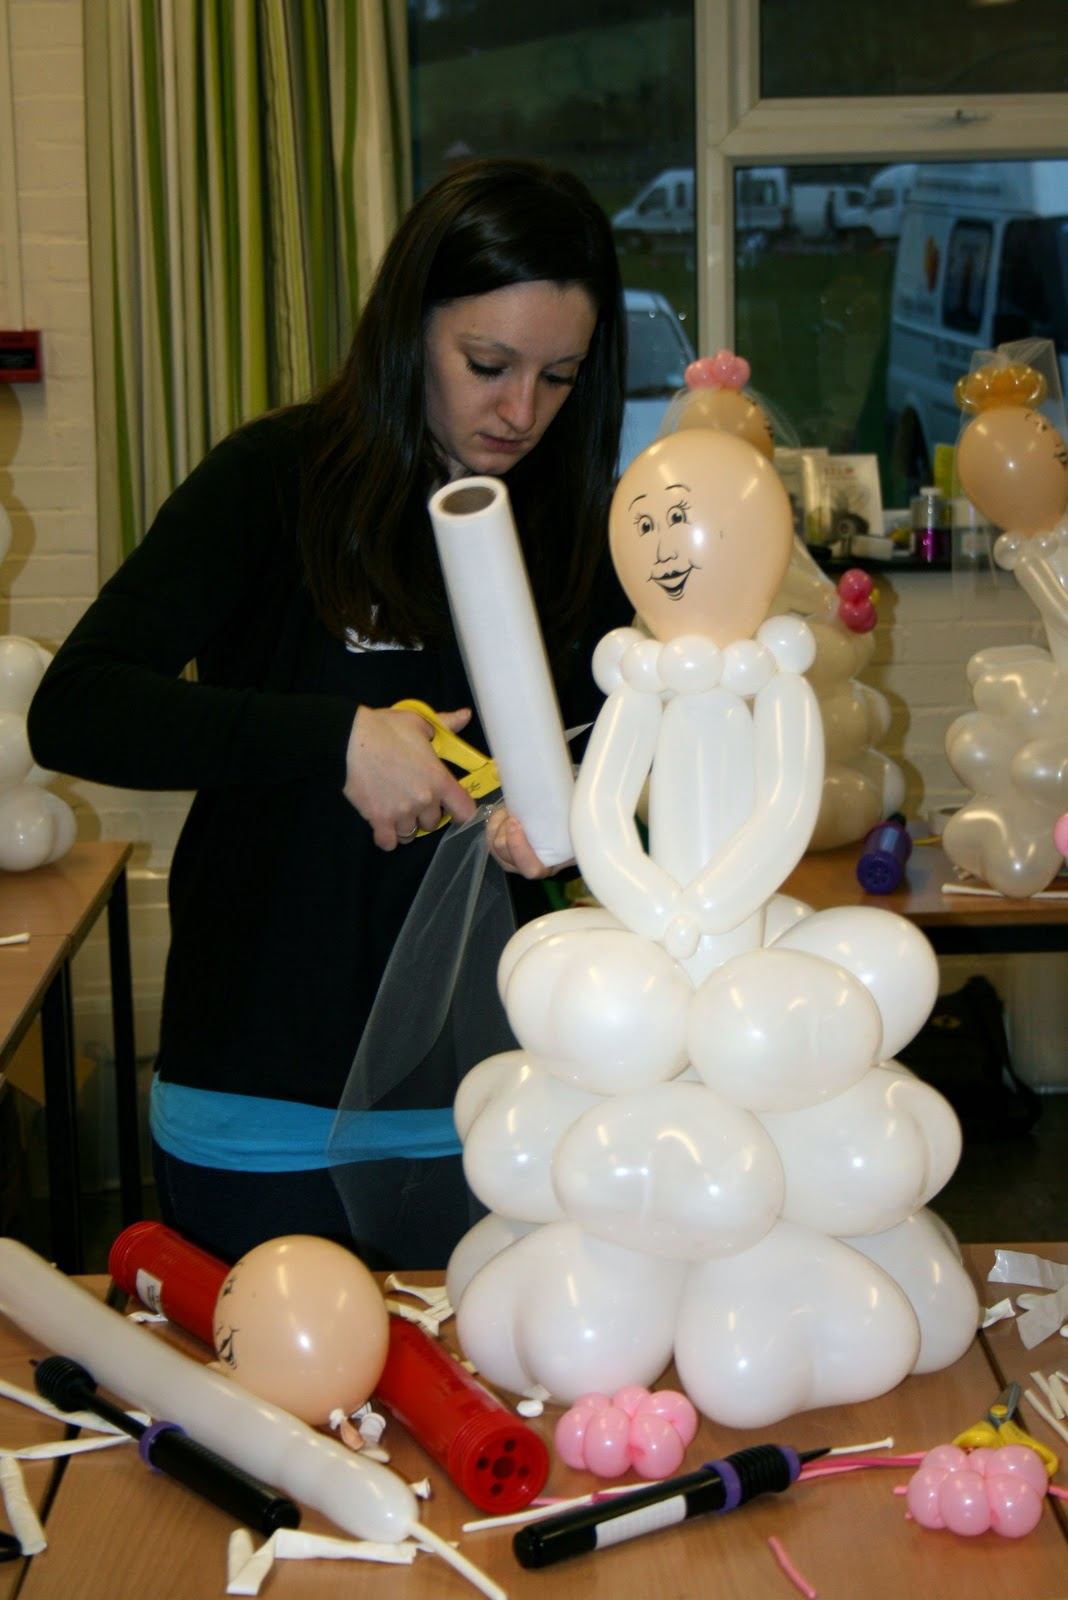 The Very Best Balloon Blog Bride Amp Groom Balloon Sculpture Recipe